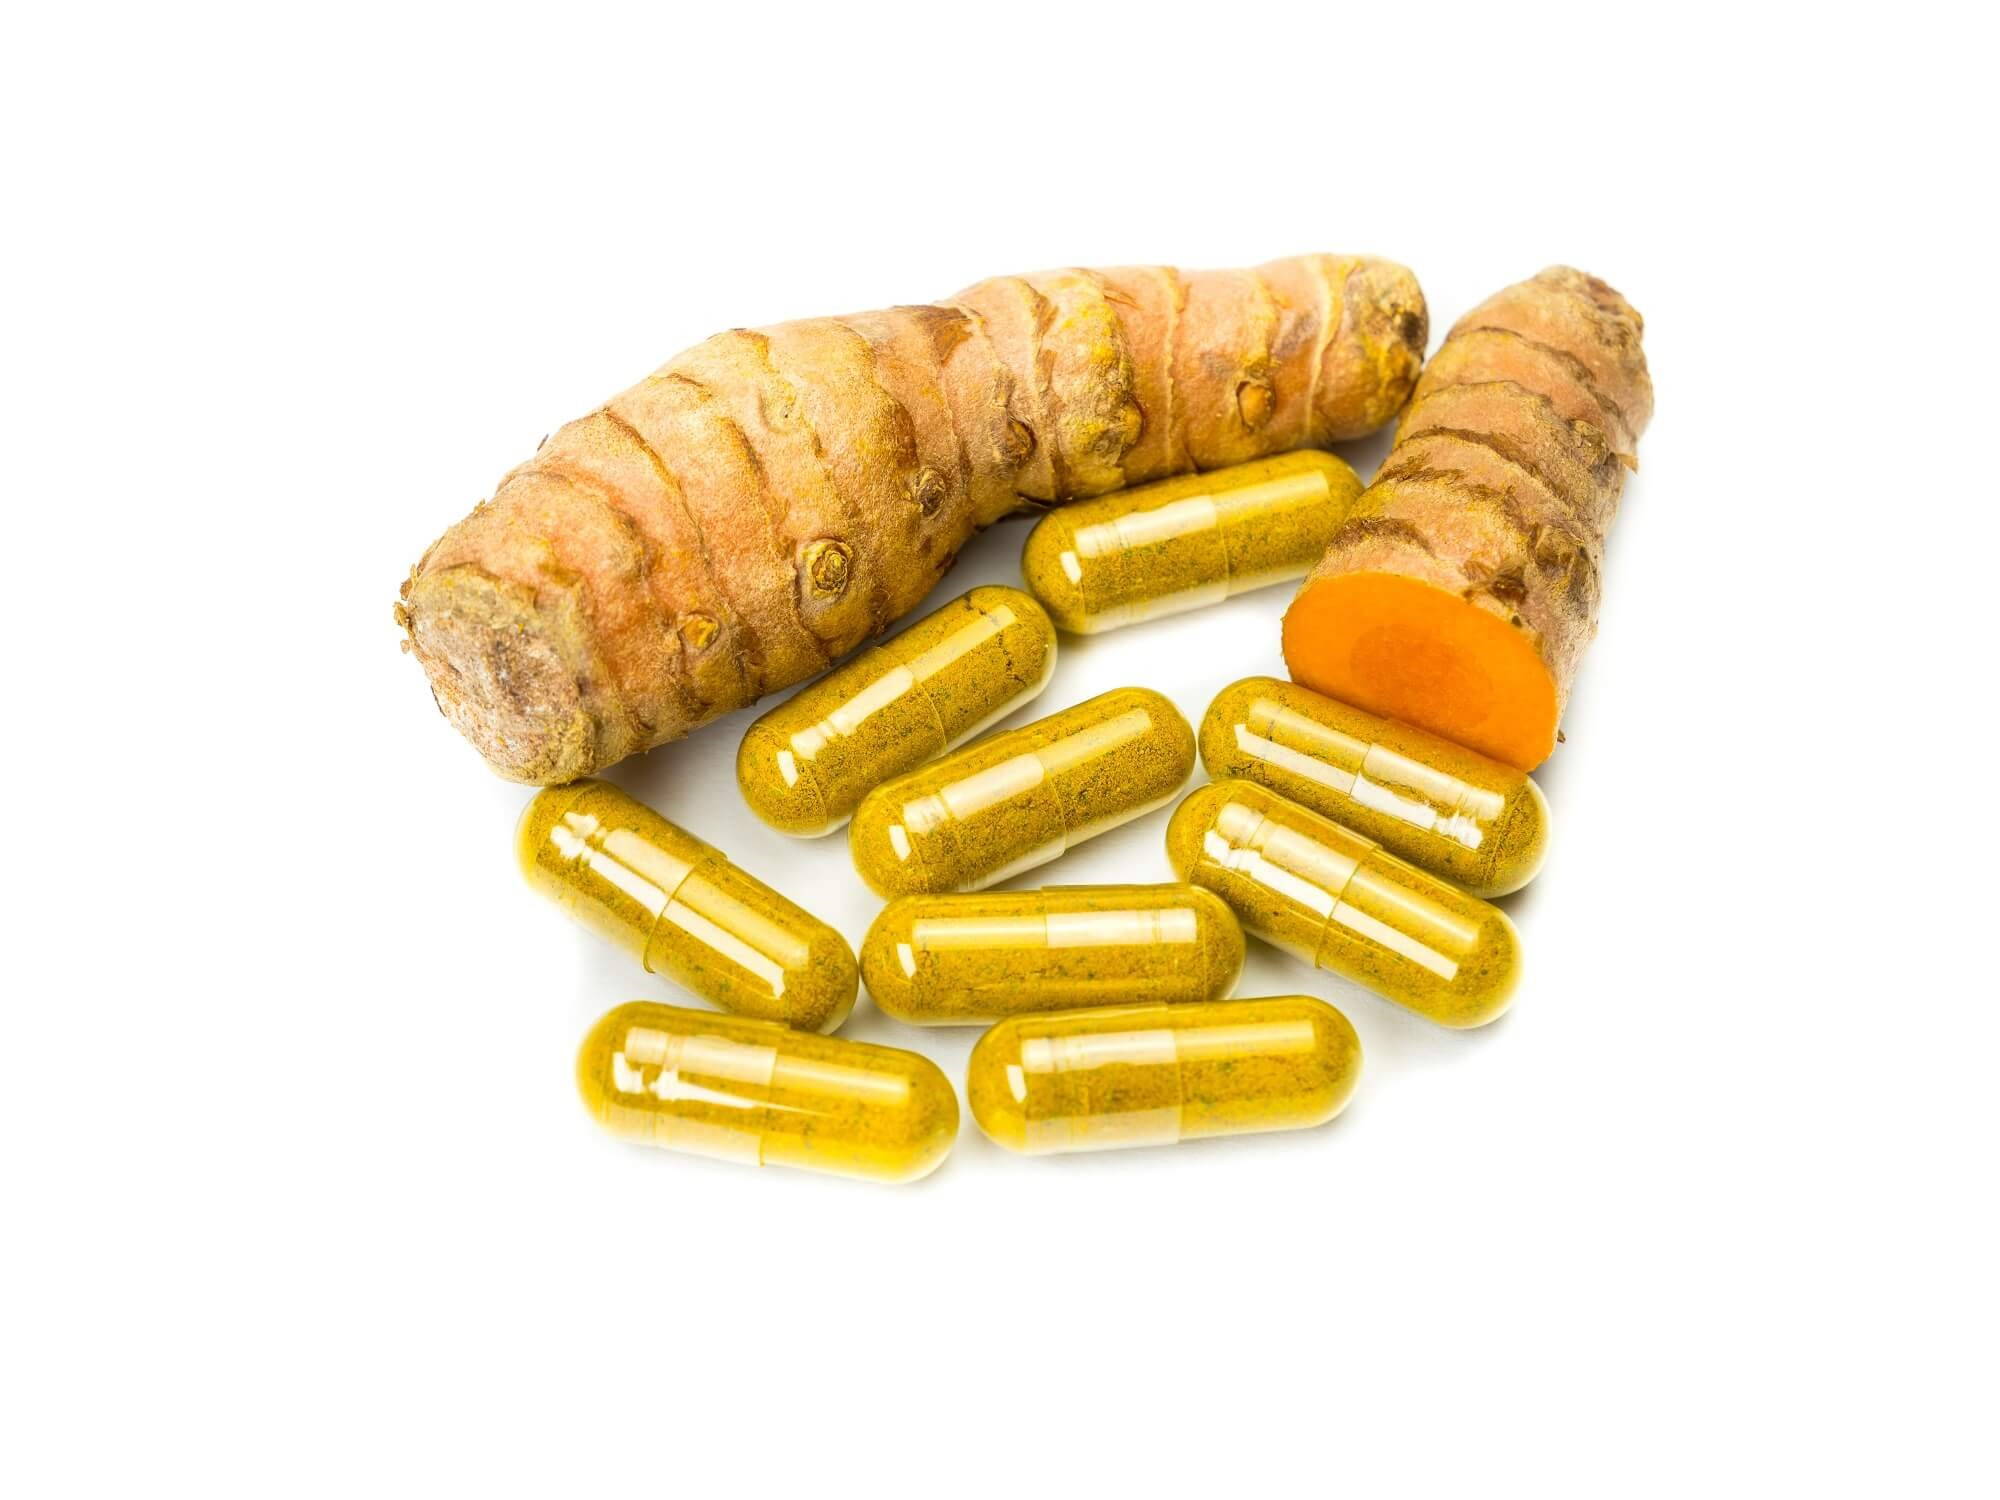 Turmeric Polyherbal Supplement May Help Reduce Facial Erythema